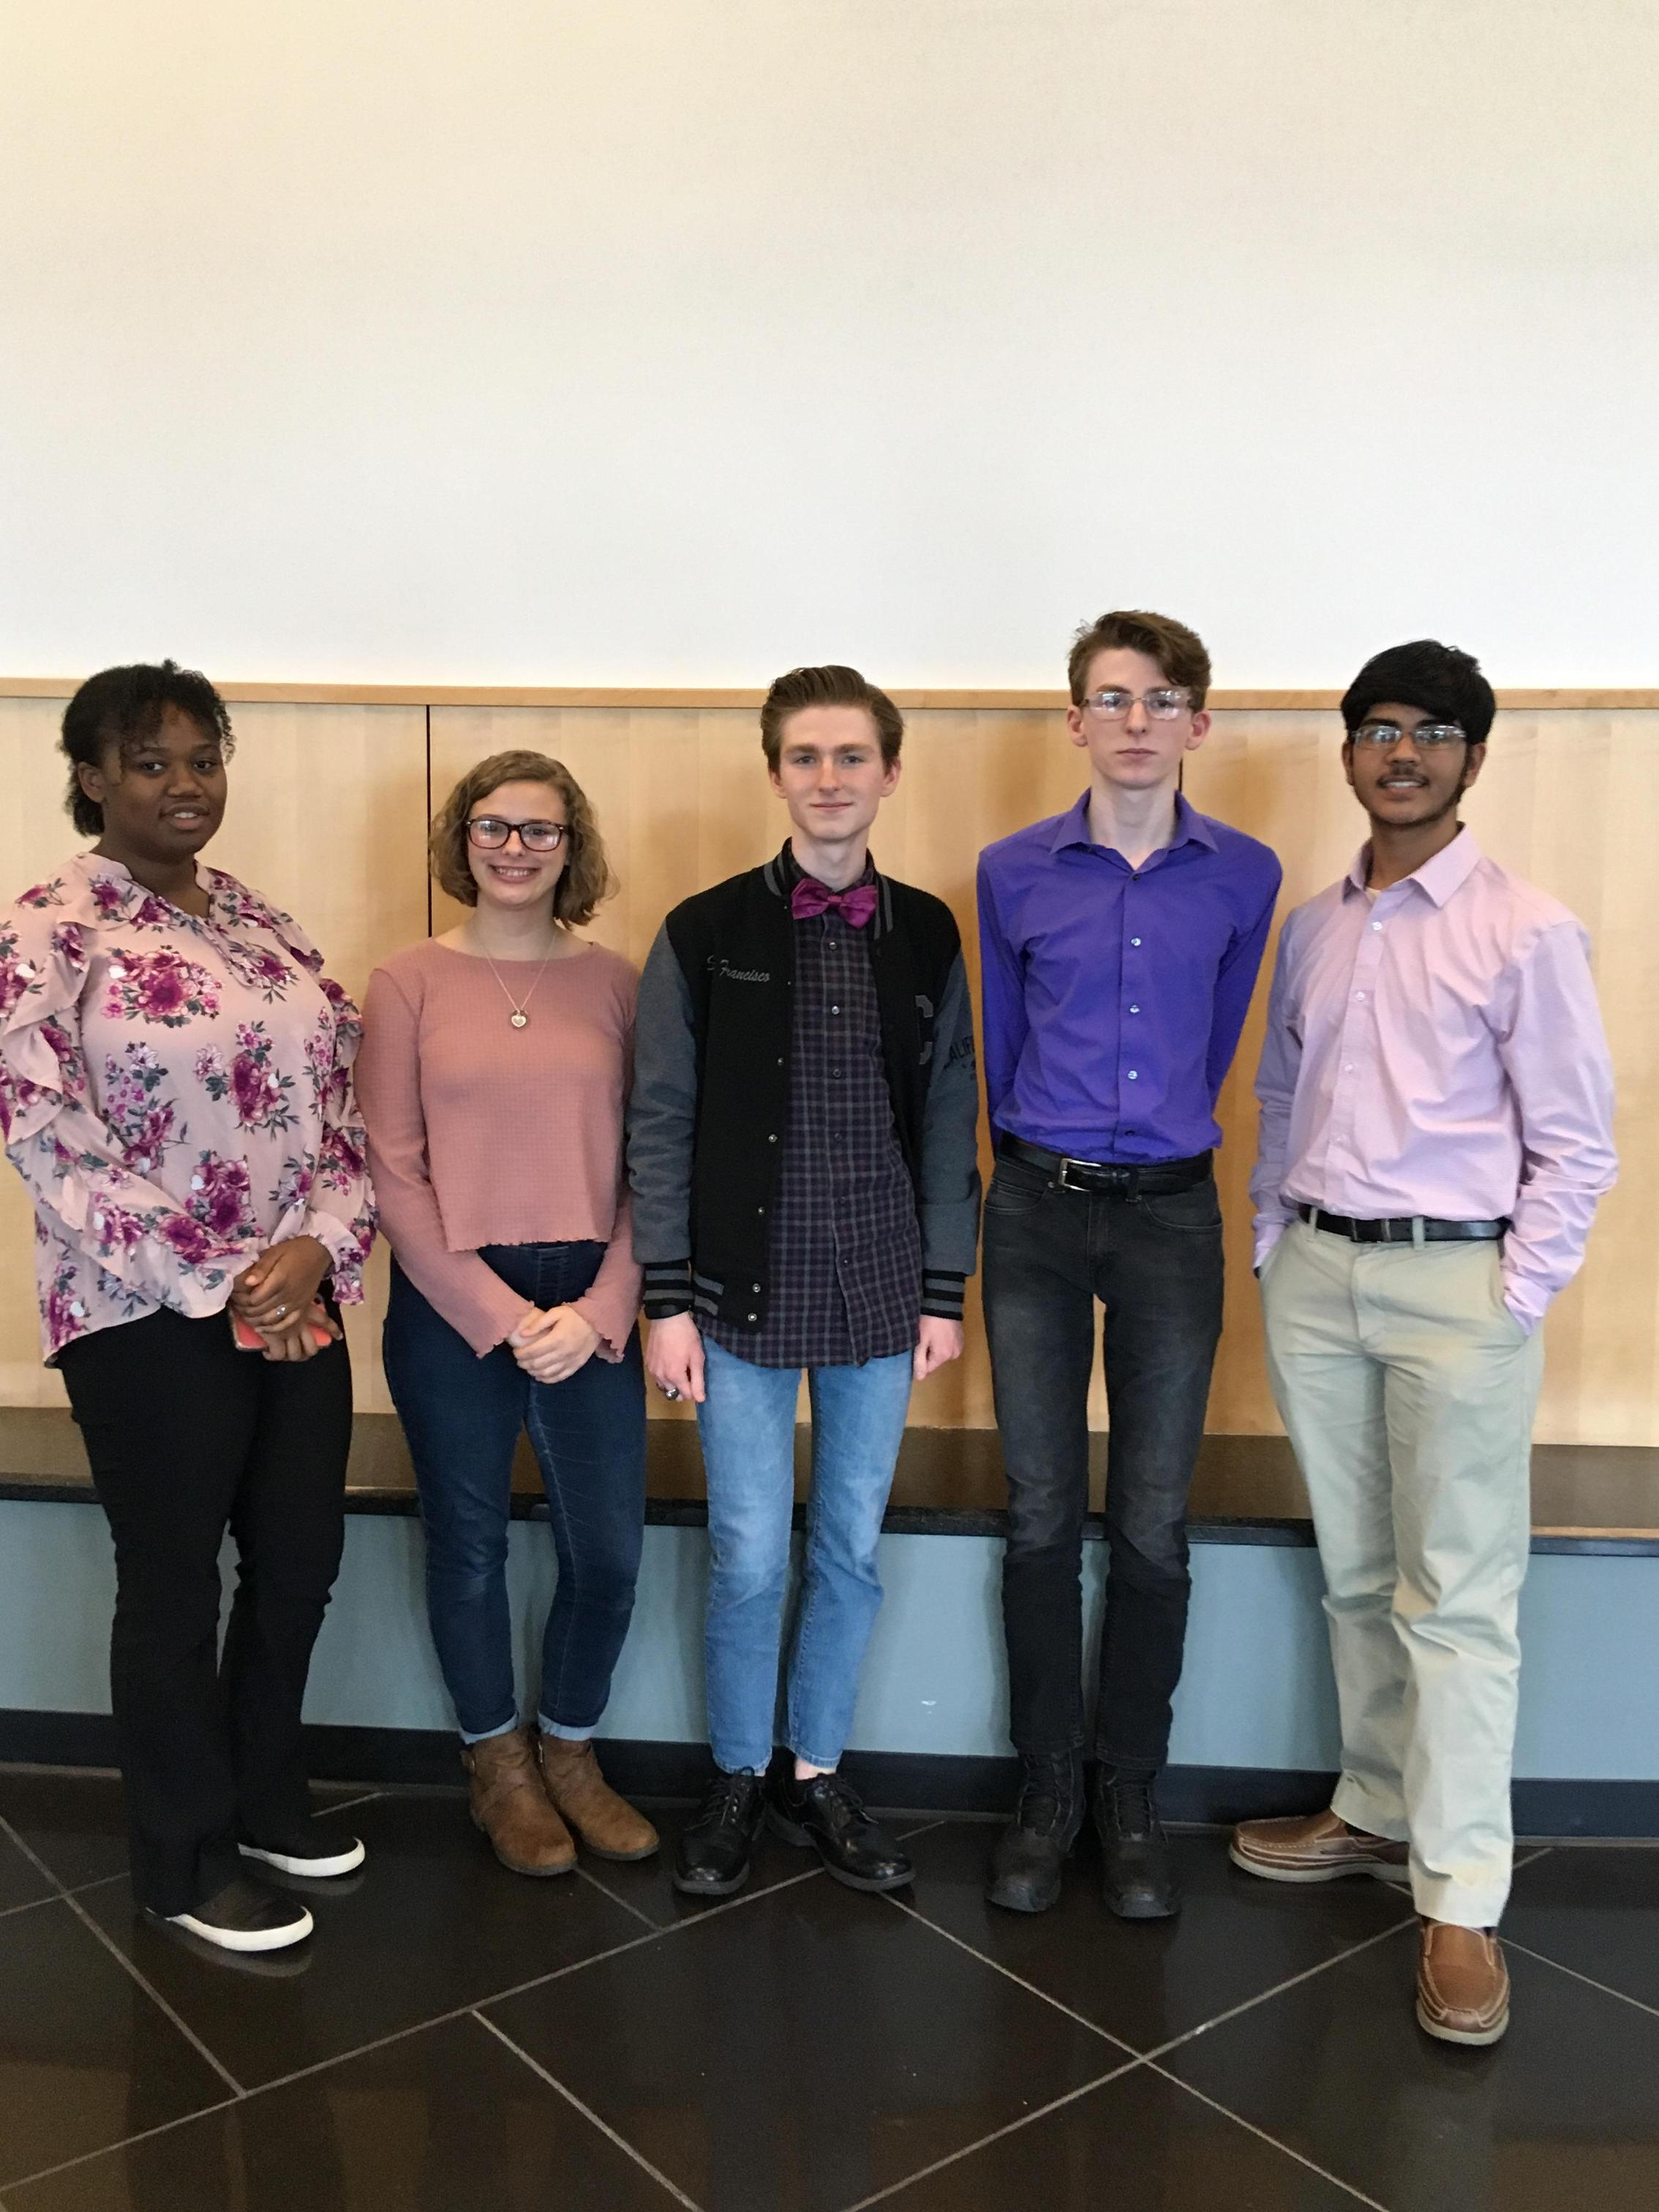 Jordyn Fleming and Taralyn Crozier placed third in the the humorous and dramatic speaking competitions.  Tirth Patel and Dalton Whitehurst participated in the duo speaking event, and Ryan Whitehurst coached all of our speakers.